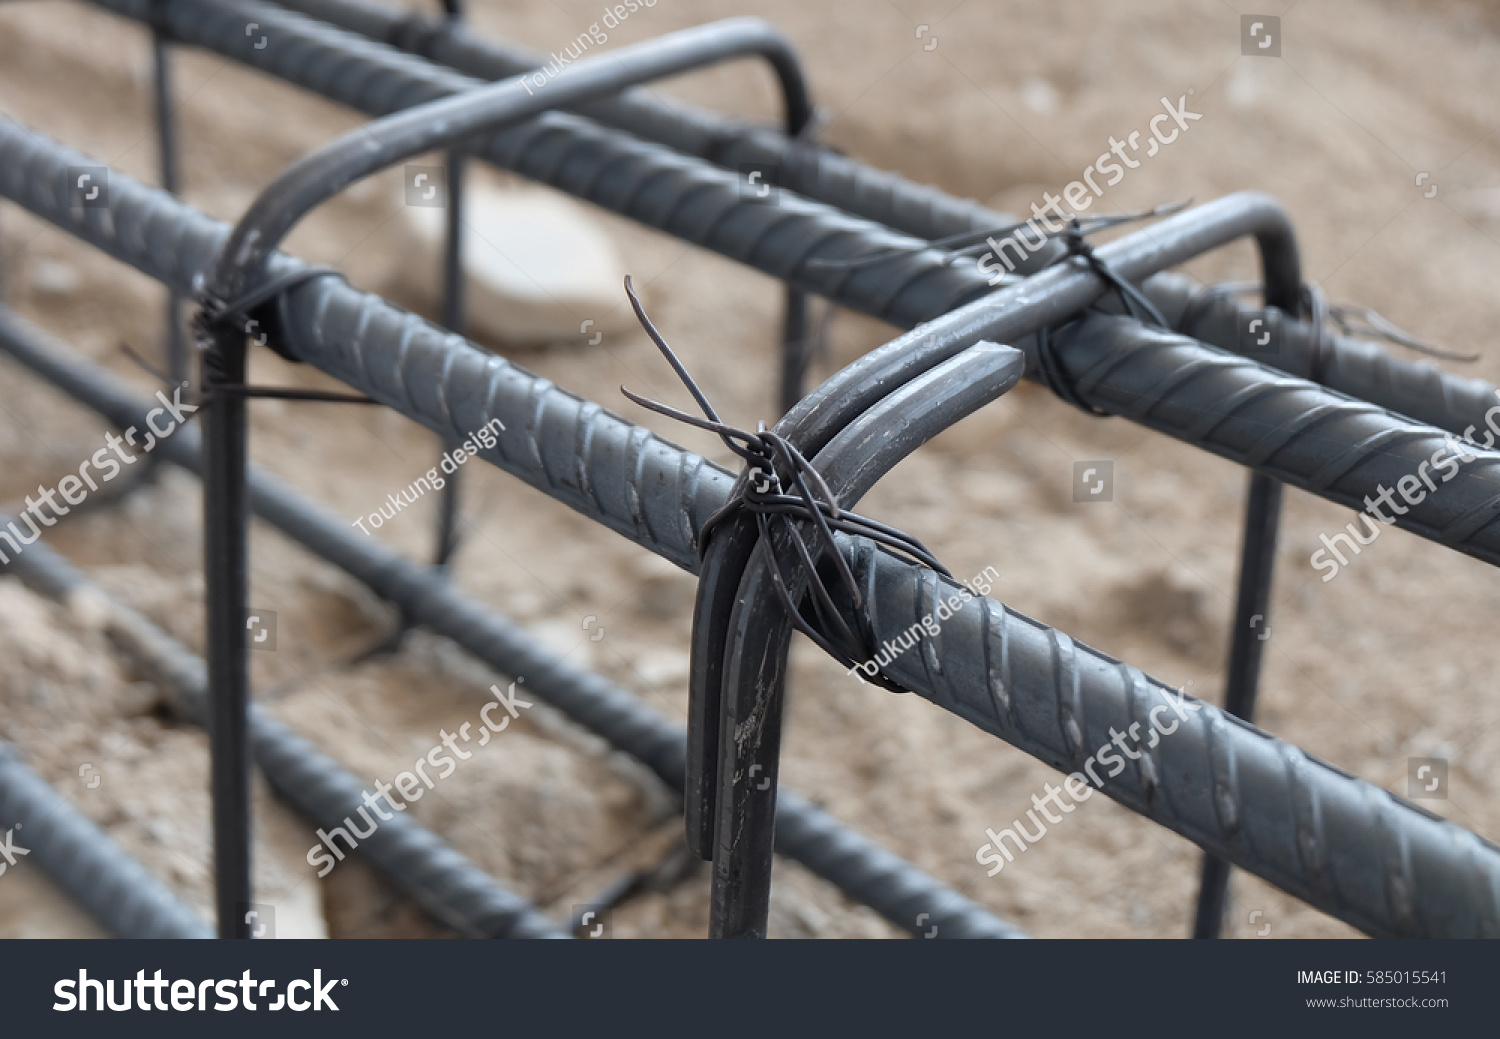 Rebar Ties With Looped Ends : List of synonyms and antonyms the word rebar tie